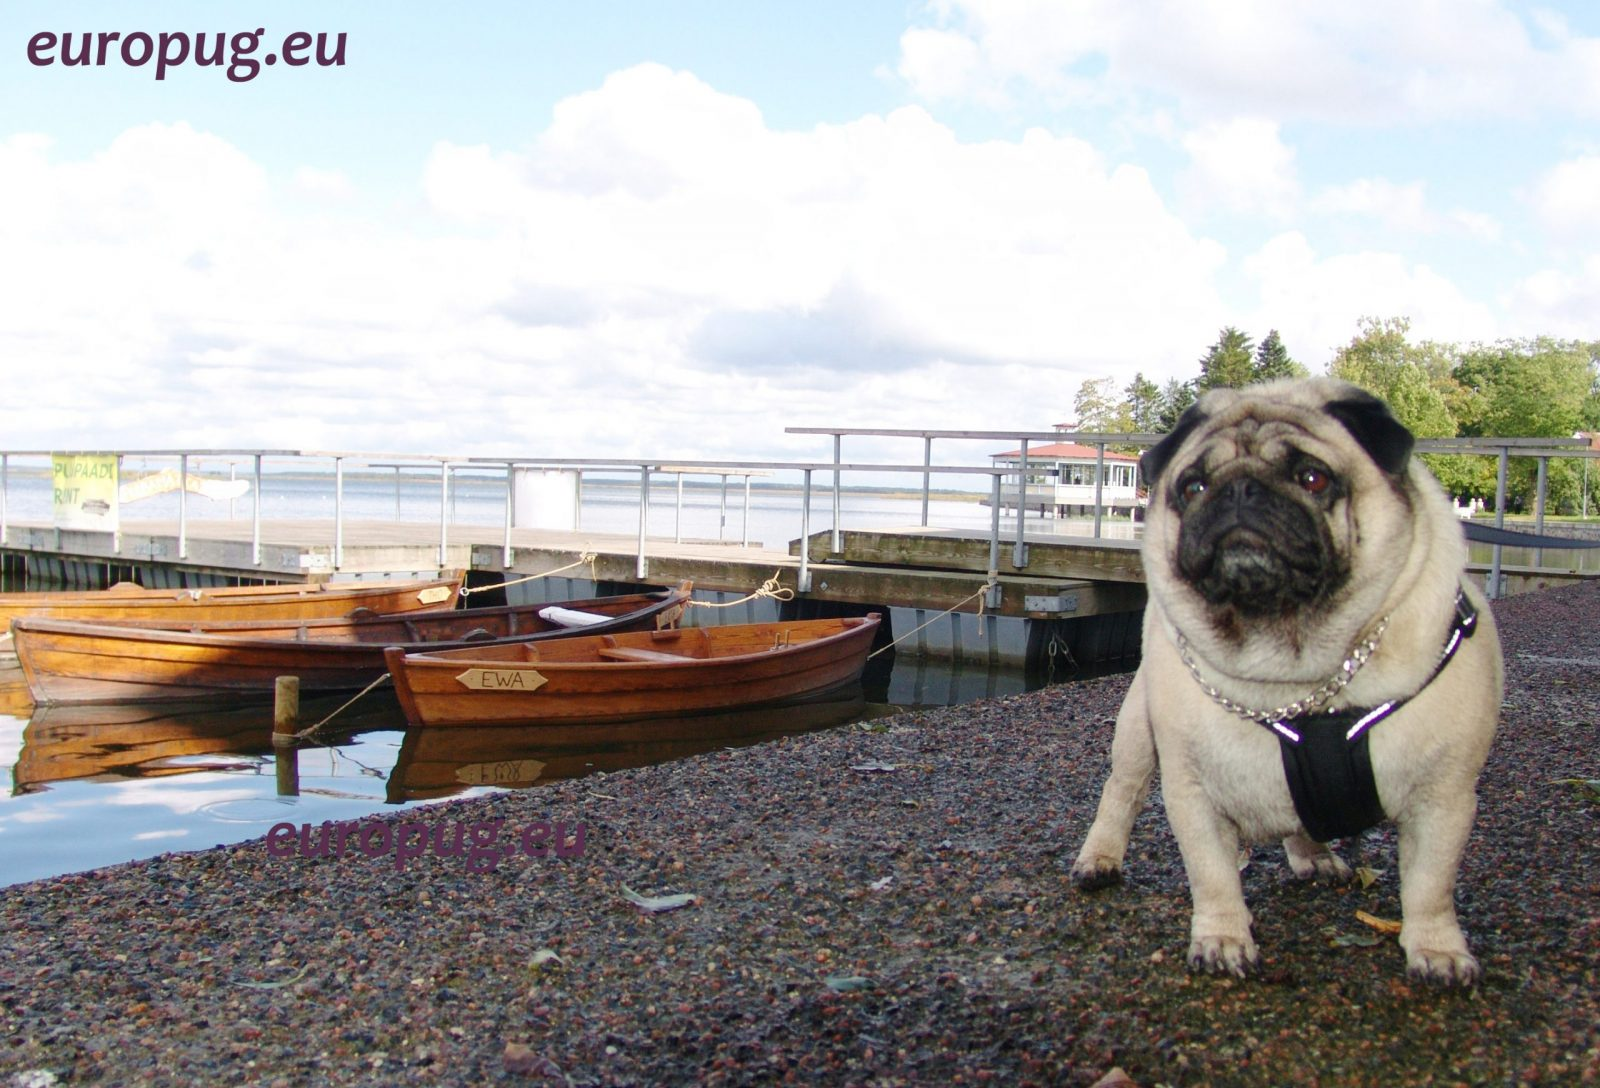 Pug on the boardwalk in Haapsalu